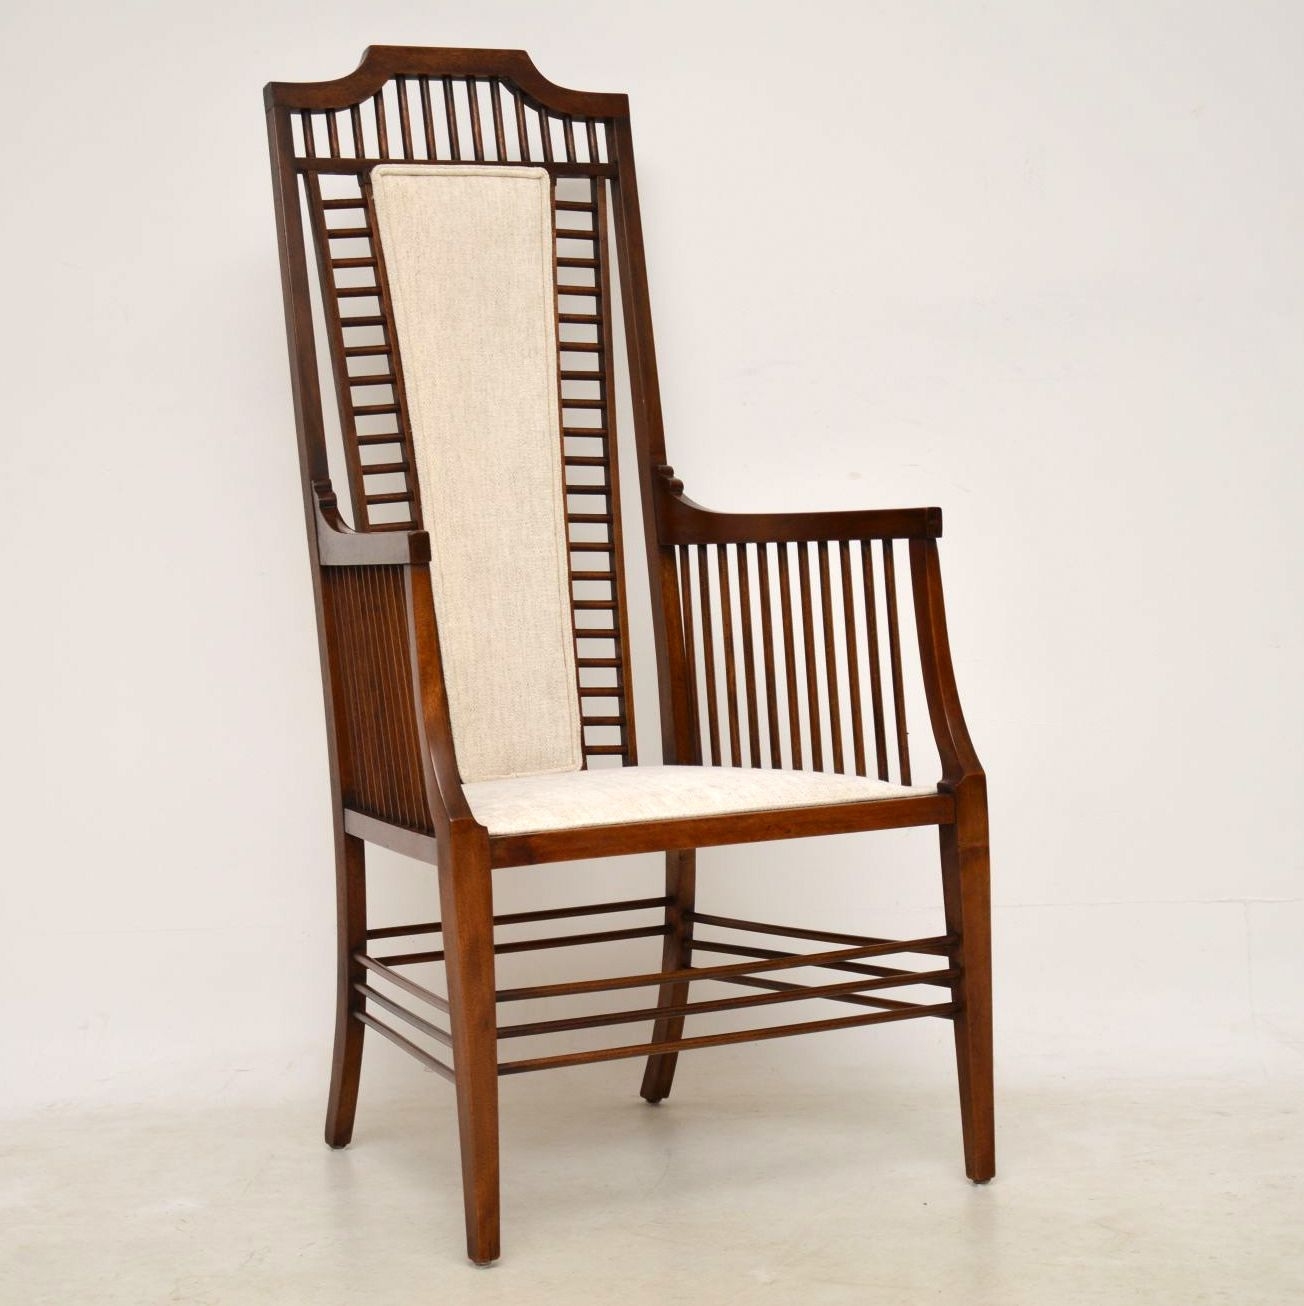 Antique Arts Crafts Mahogany Armchair Interior Boutiques Antiques For Sale And Mid Century Modern Furniture French Furniture Antique Lighting Retro Furniture And Danish Furniture